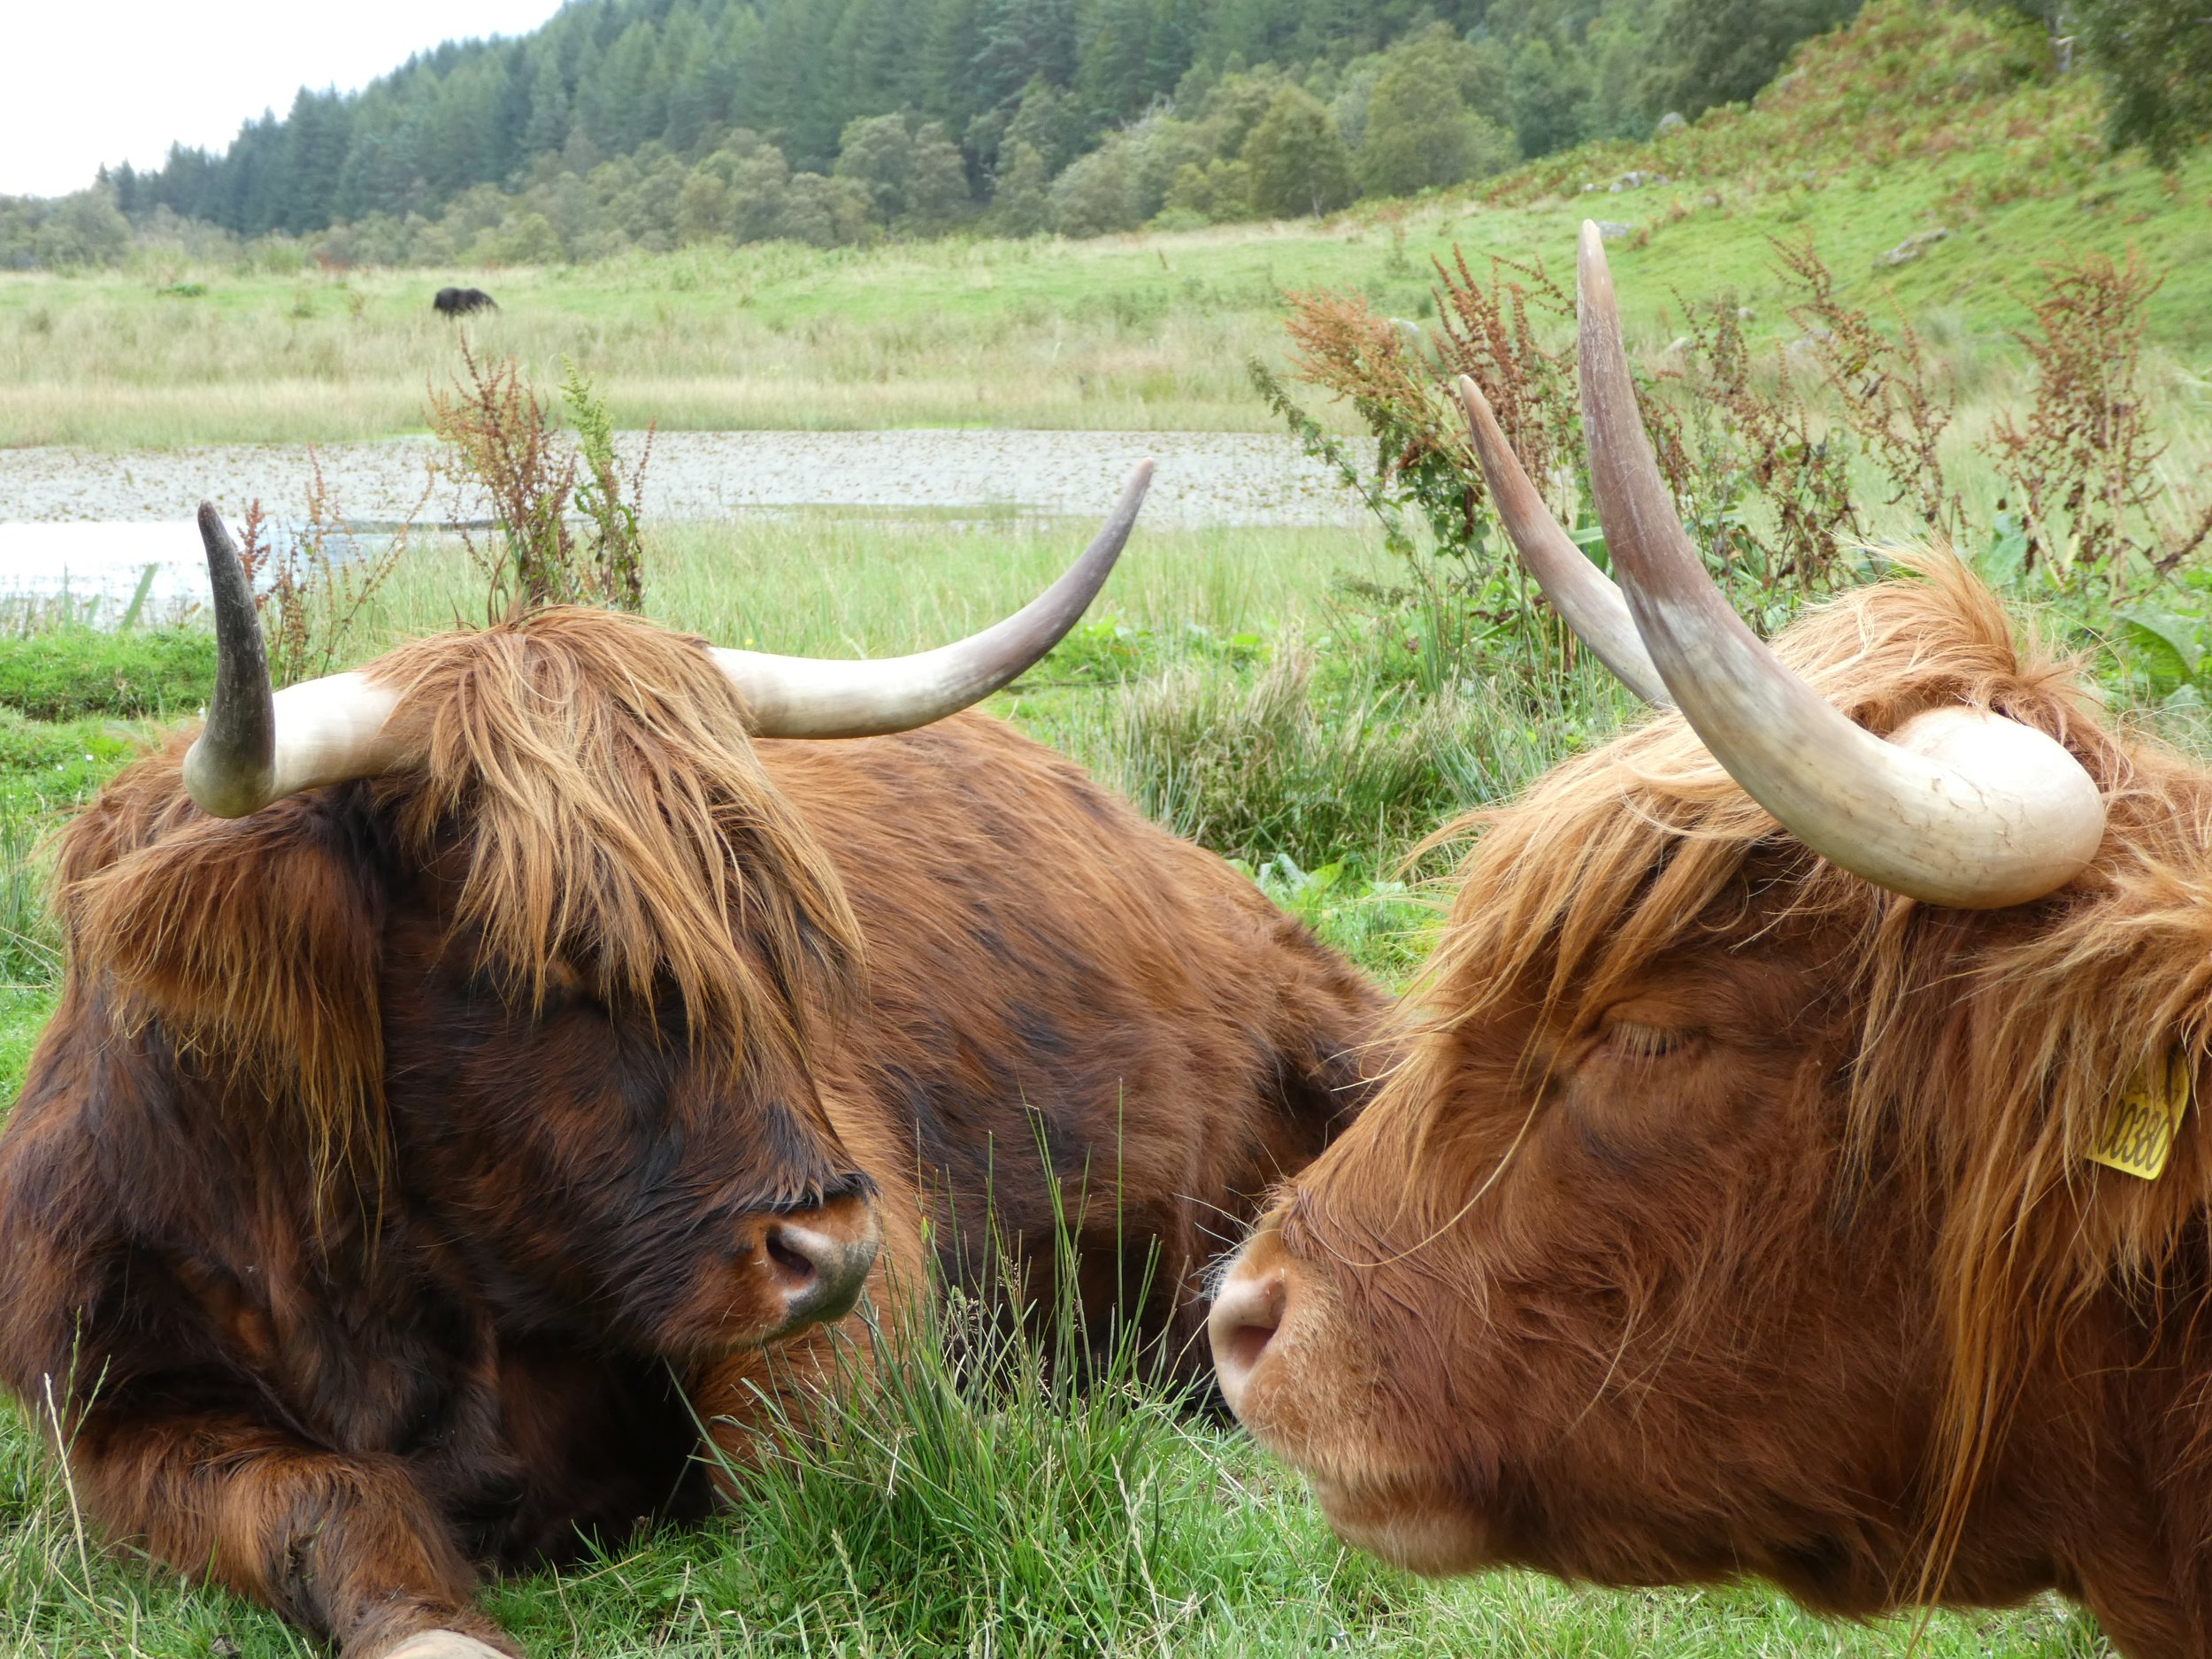 Napping Highland Cows